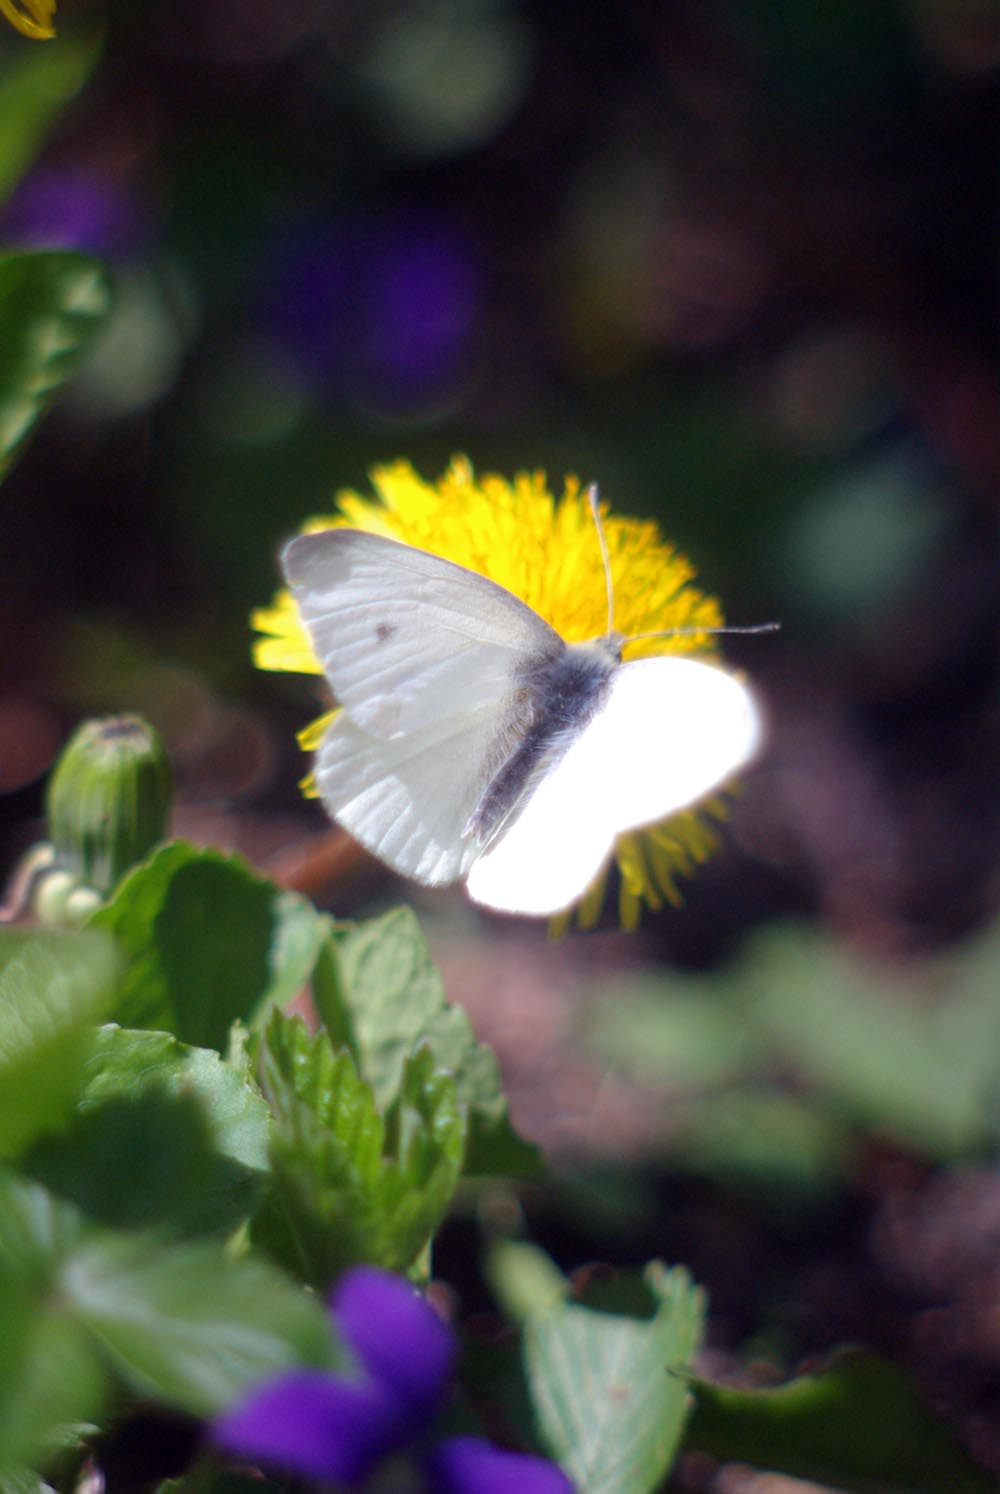 """""""The First Butterfly"""", a cabbage white butterfly, welcome in spring to visit the dandelions and violets"""